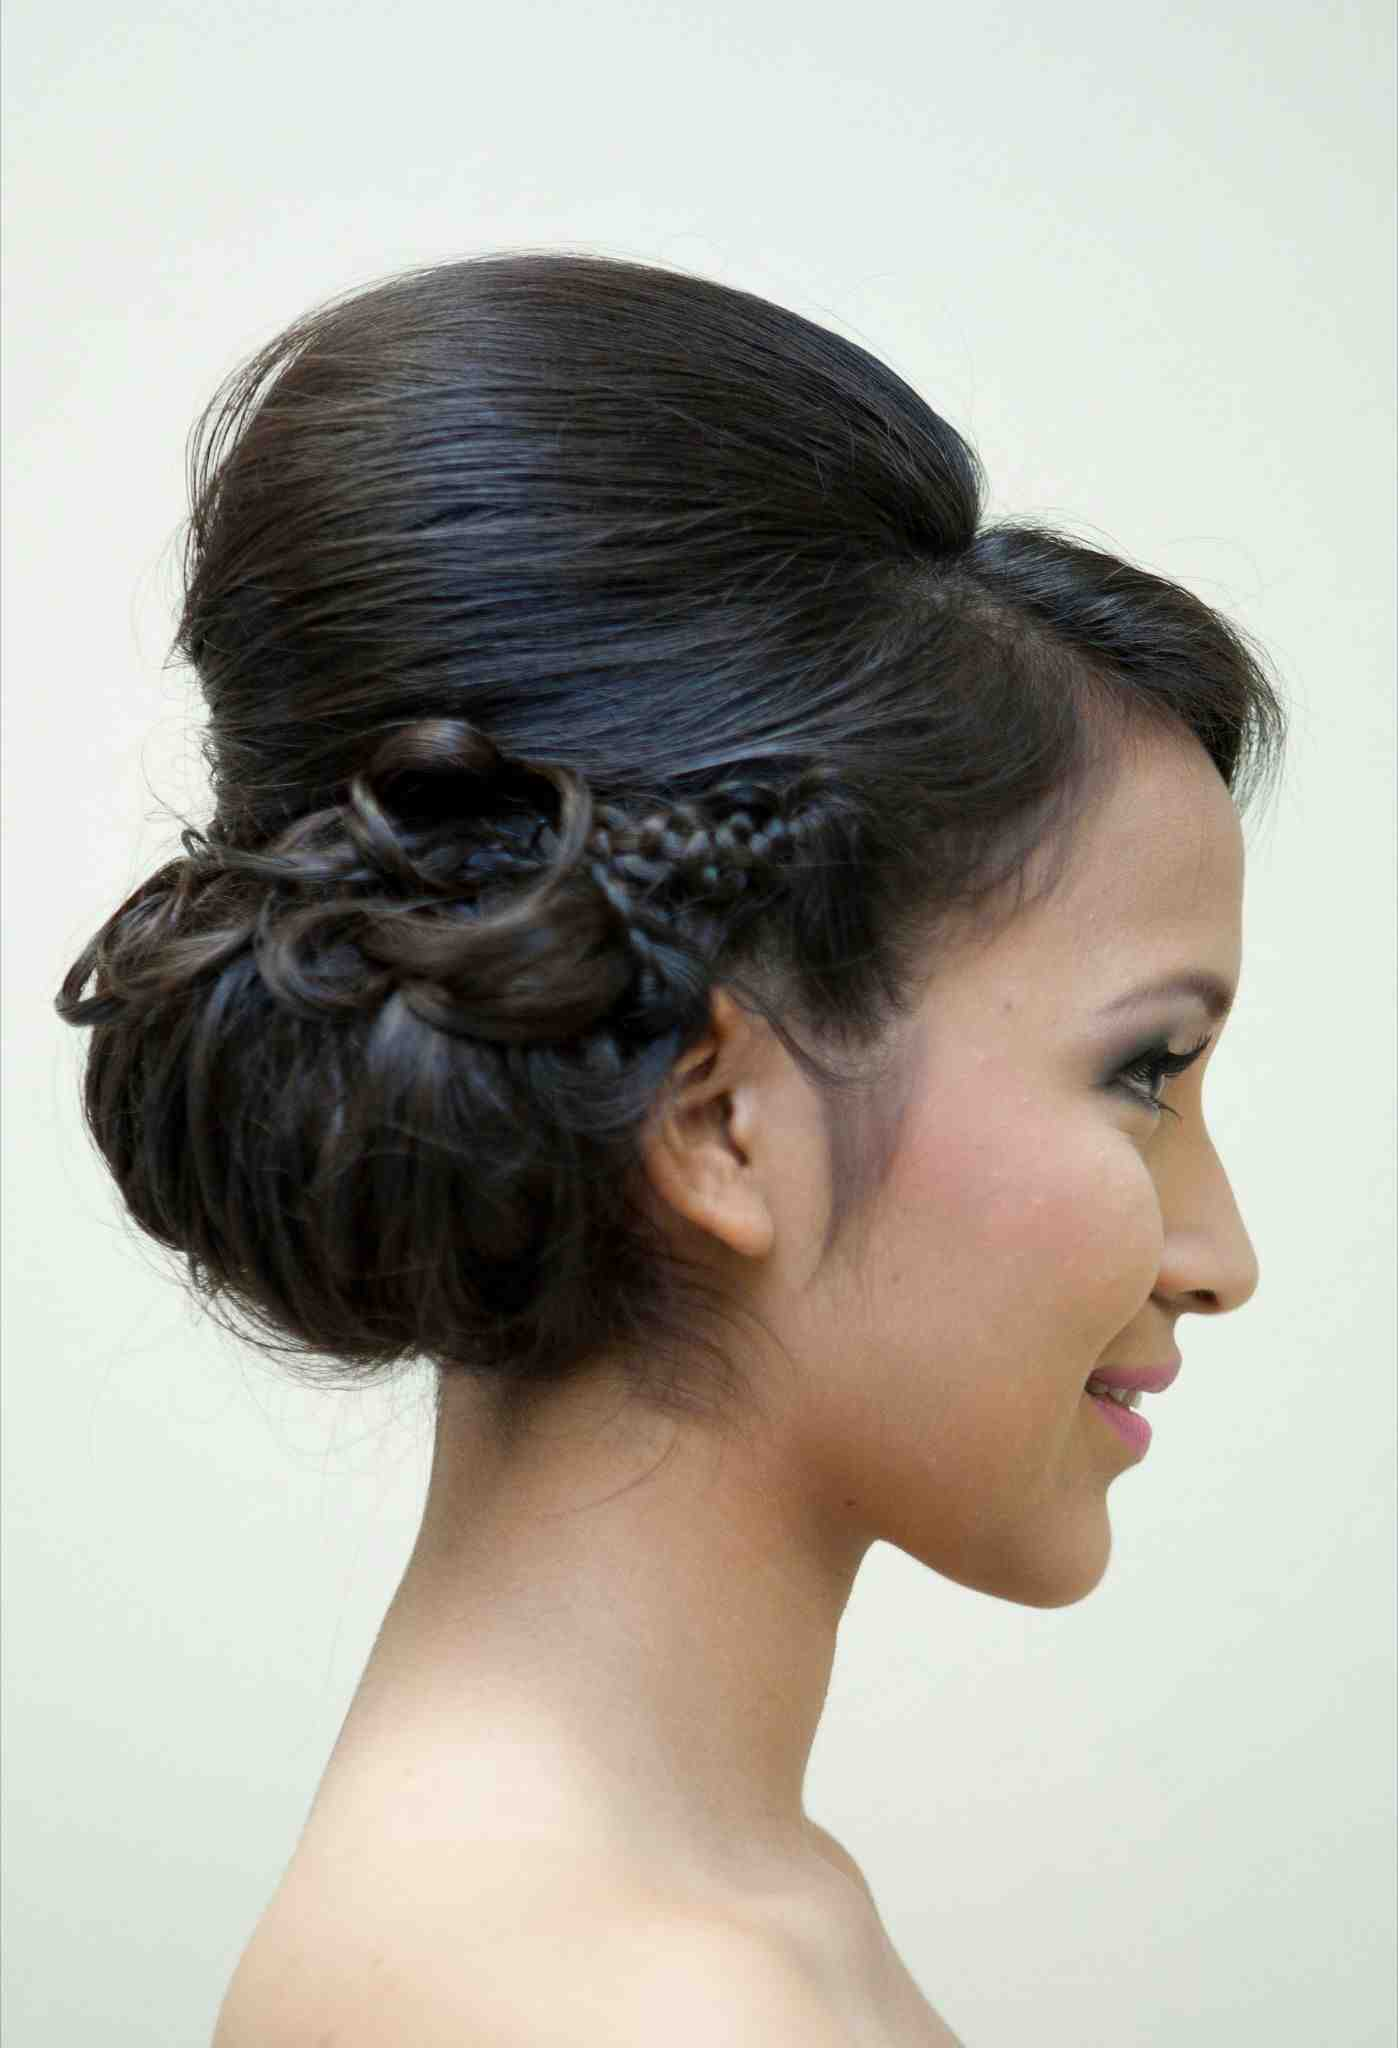 Hairstyles For A Quinceanera Makeup Artists In Houston Tx Mobile Makeup Artists Houston